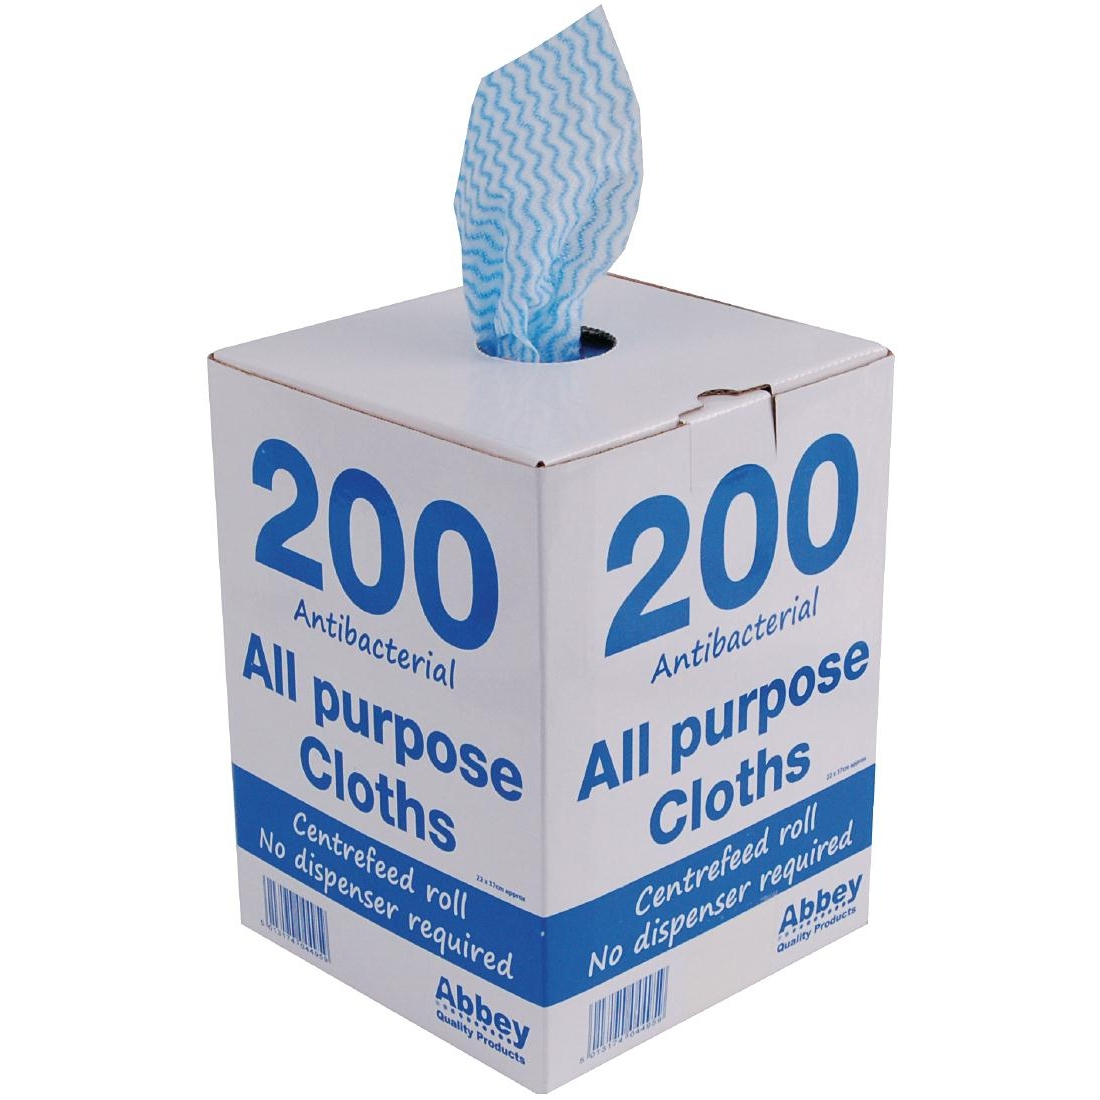 Jantex Antibacterial All Purpose Cloth Blue 200